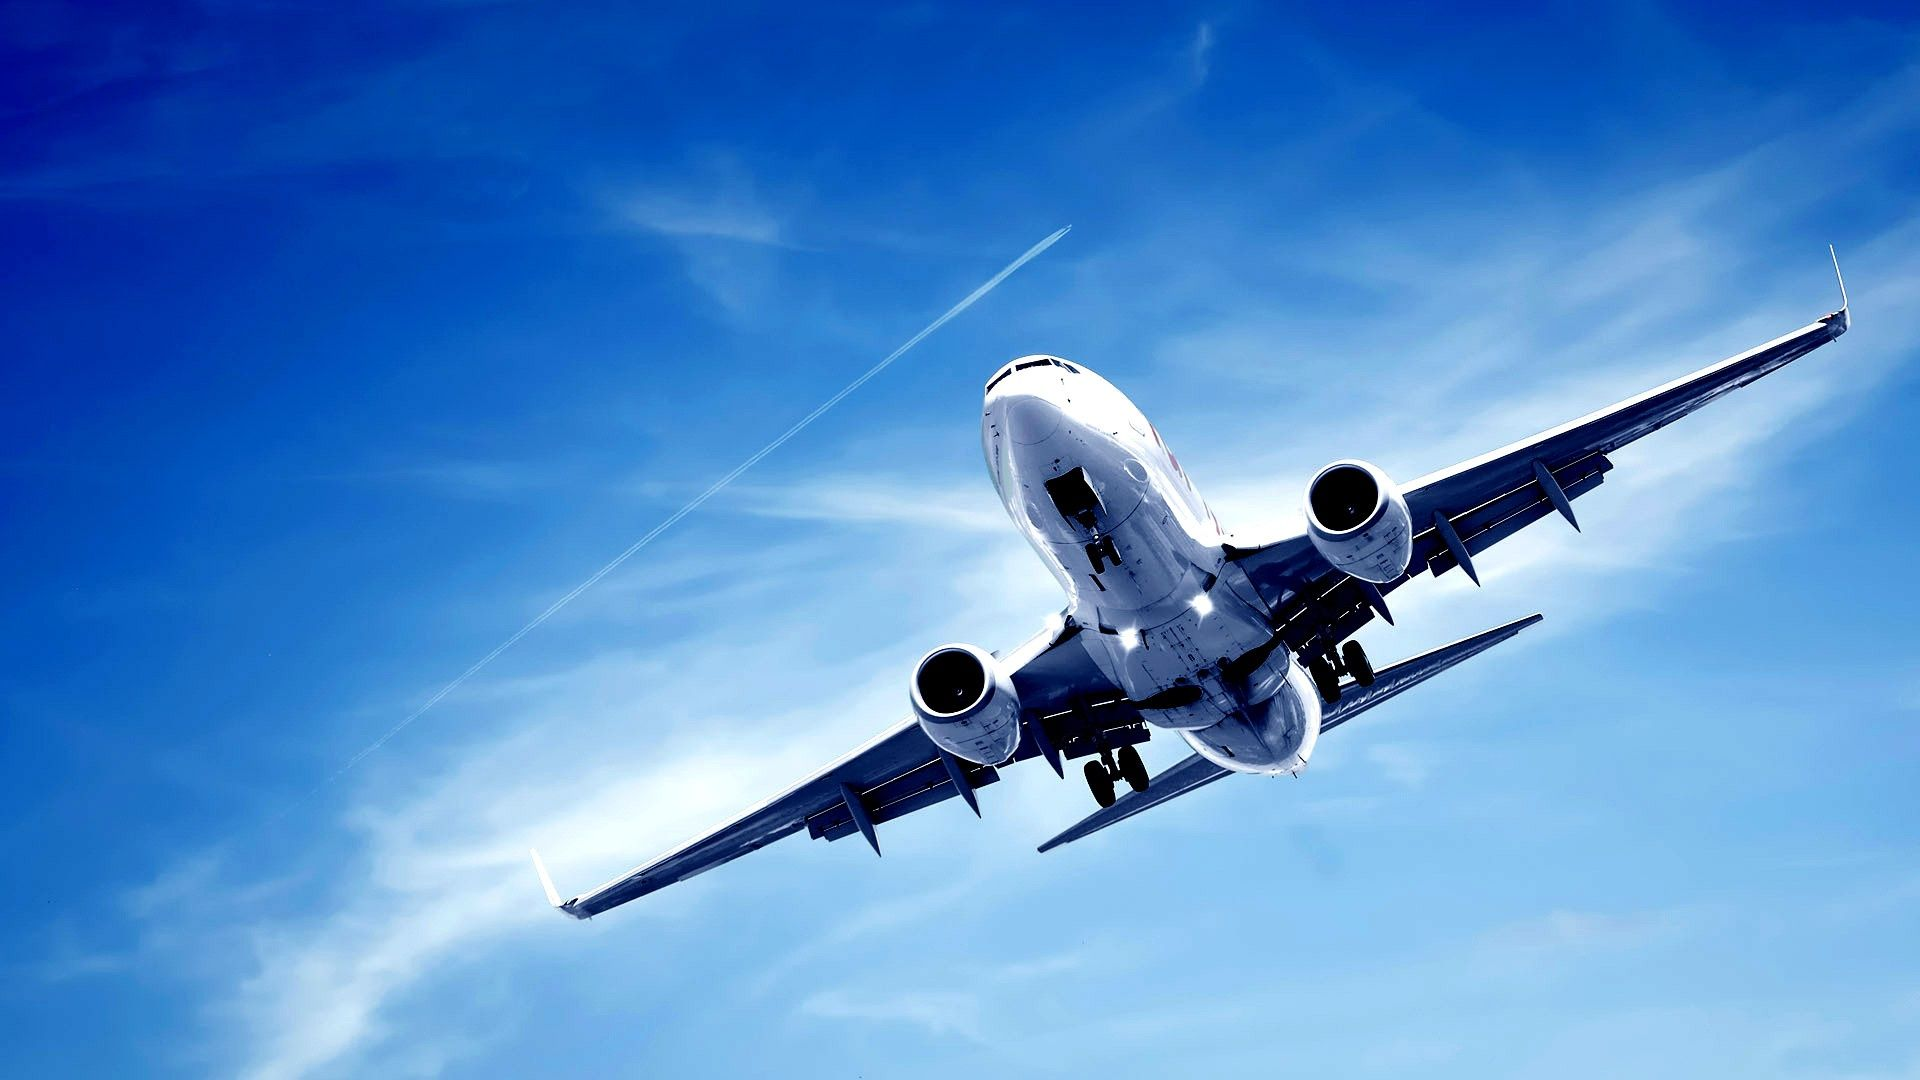 Hd Airplane Backgrounds Wallpapers Backgrounds Images Art Photos Airplane Wallpaper Aviation Aeroplane